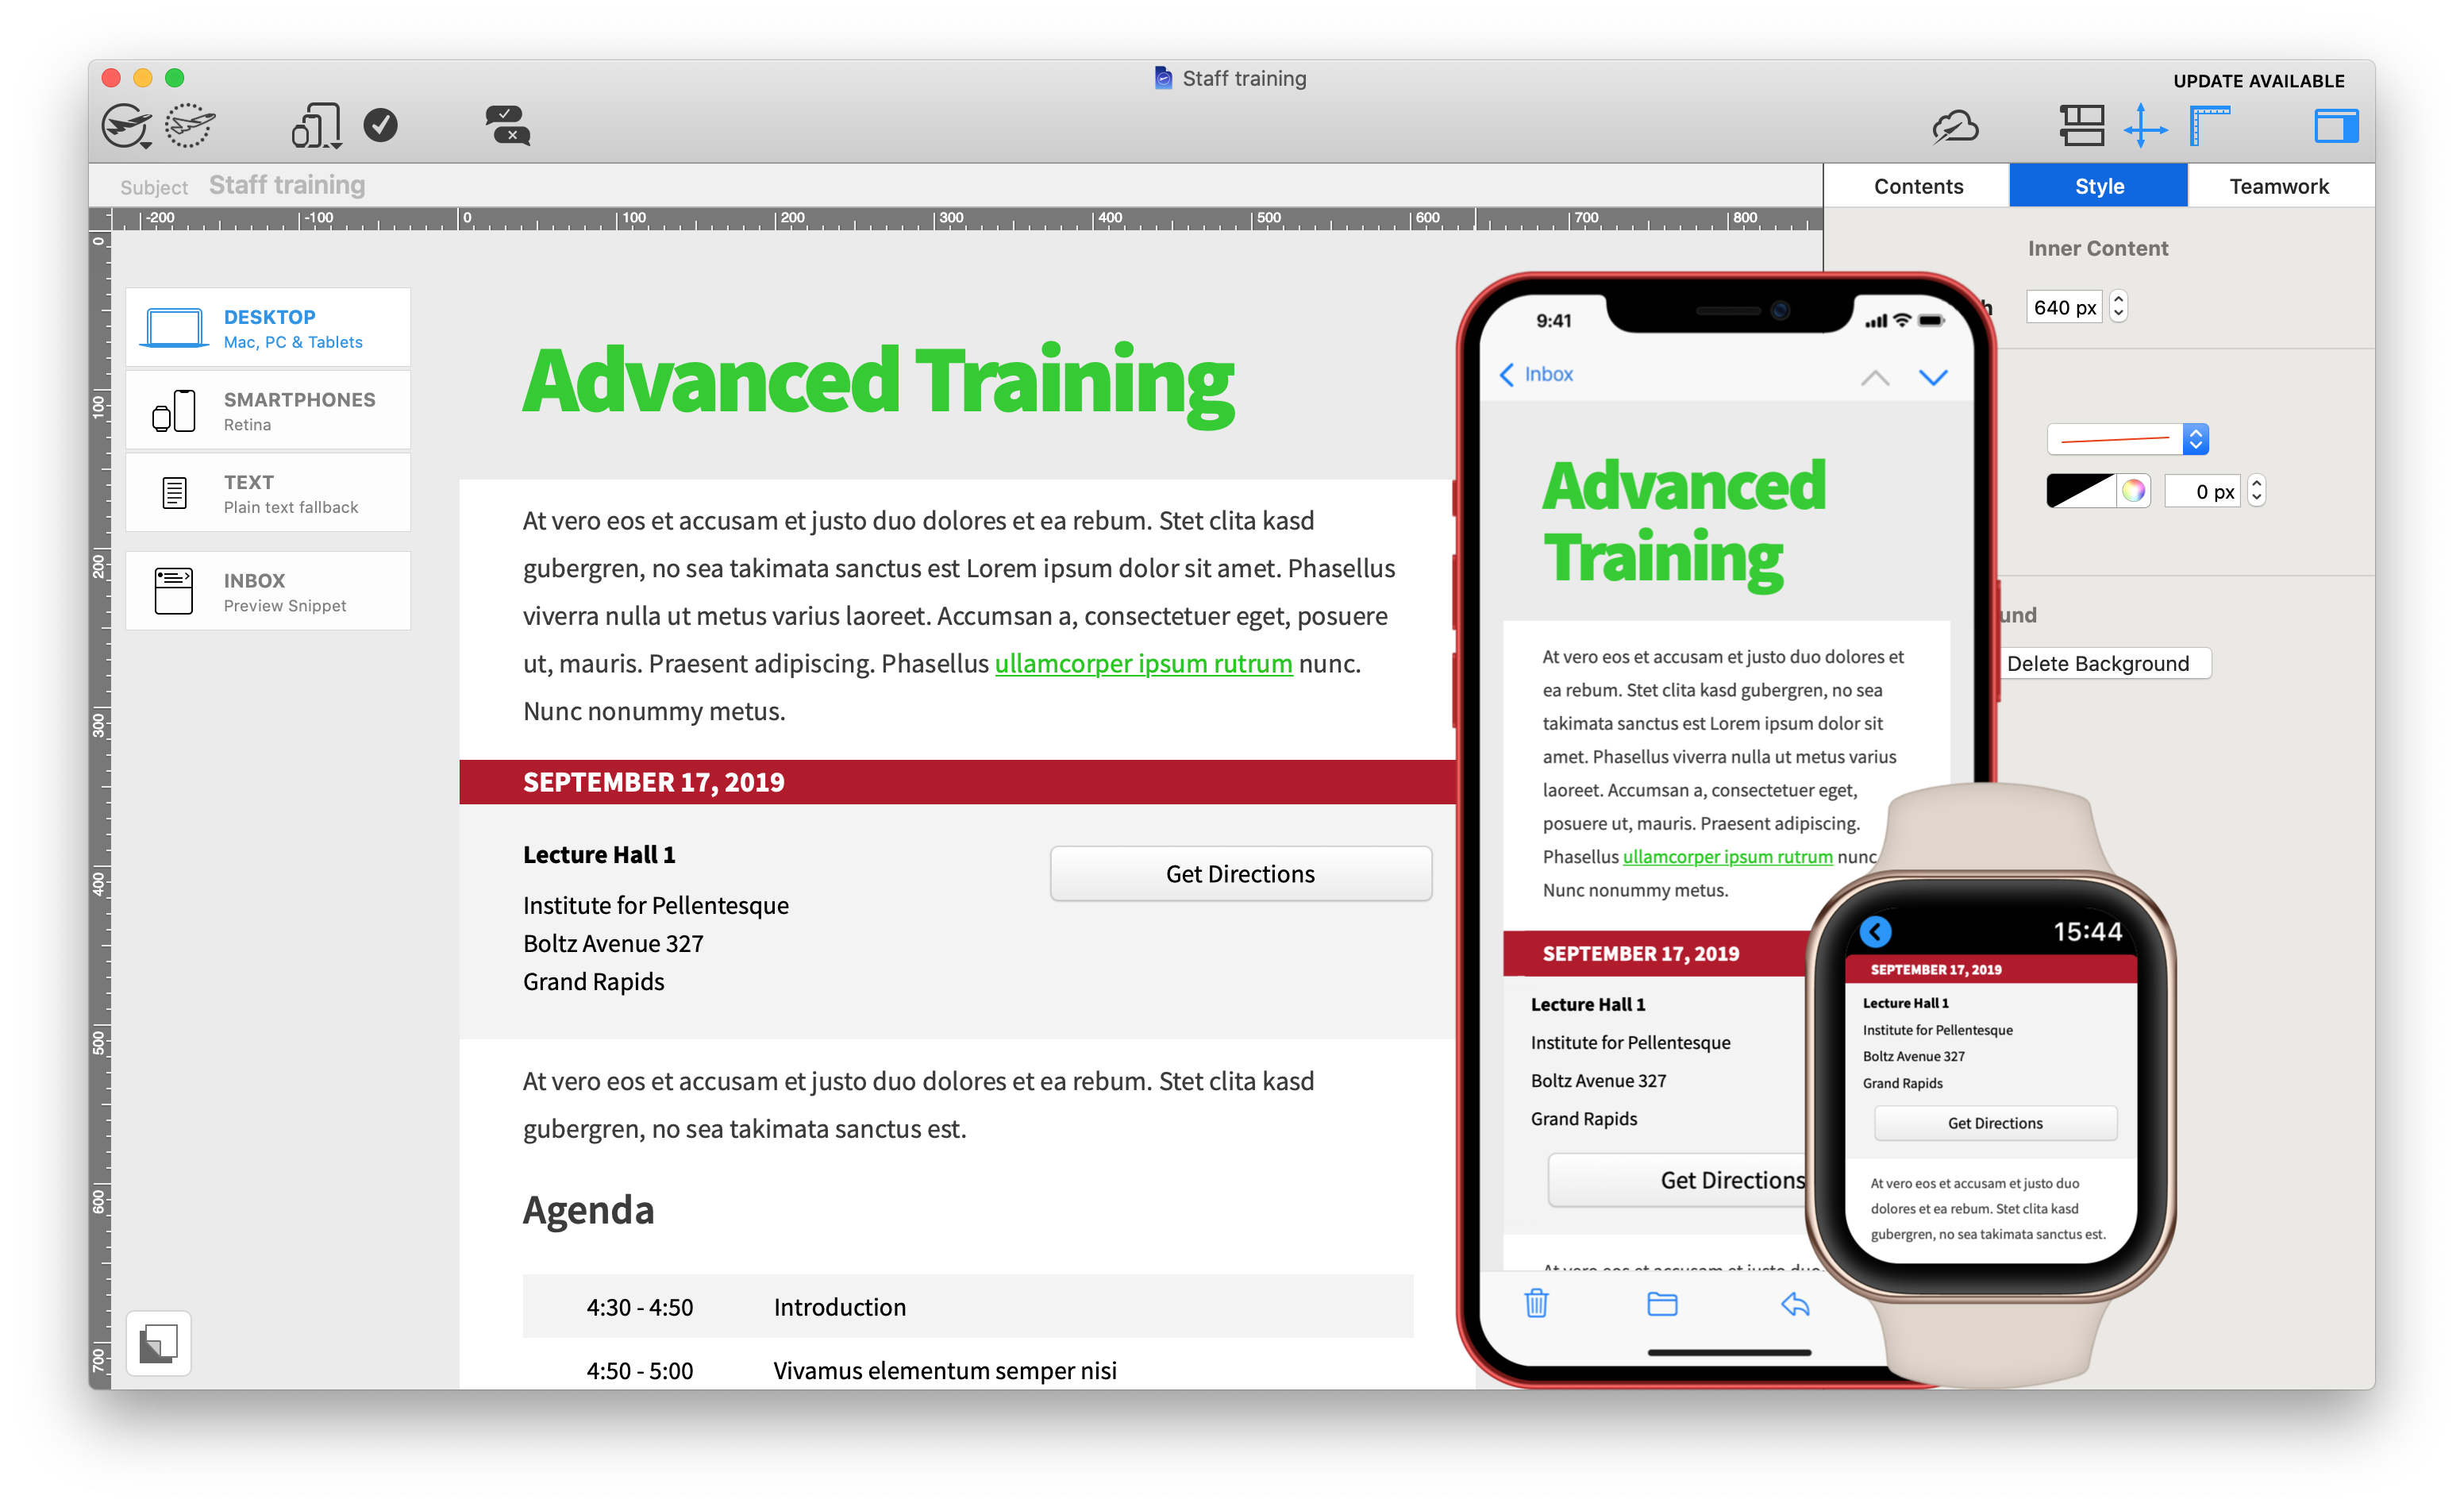 staff training email template - available in mail designer 365